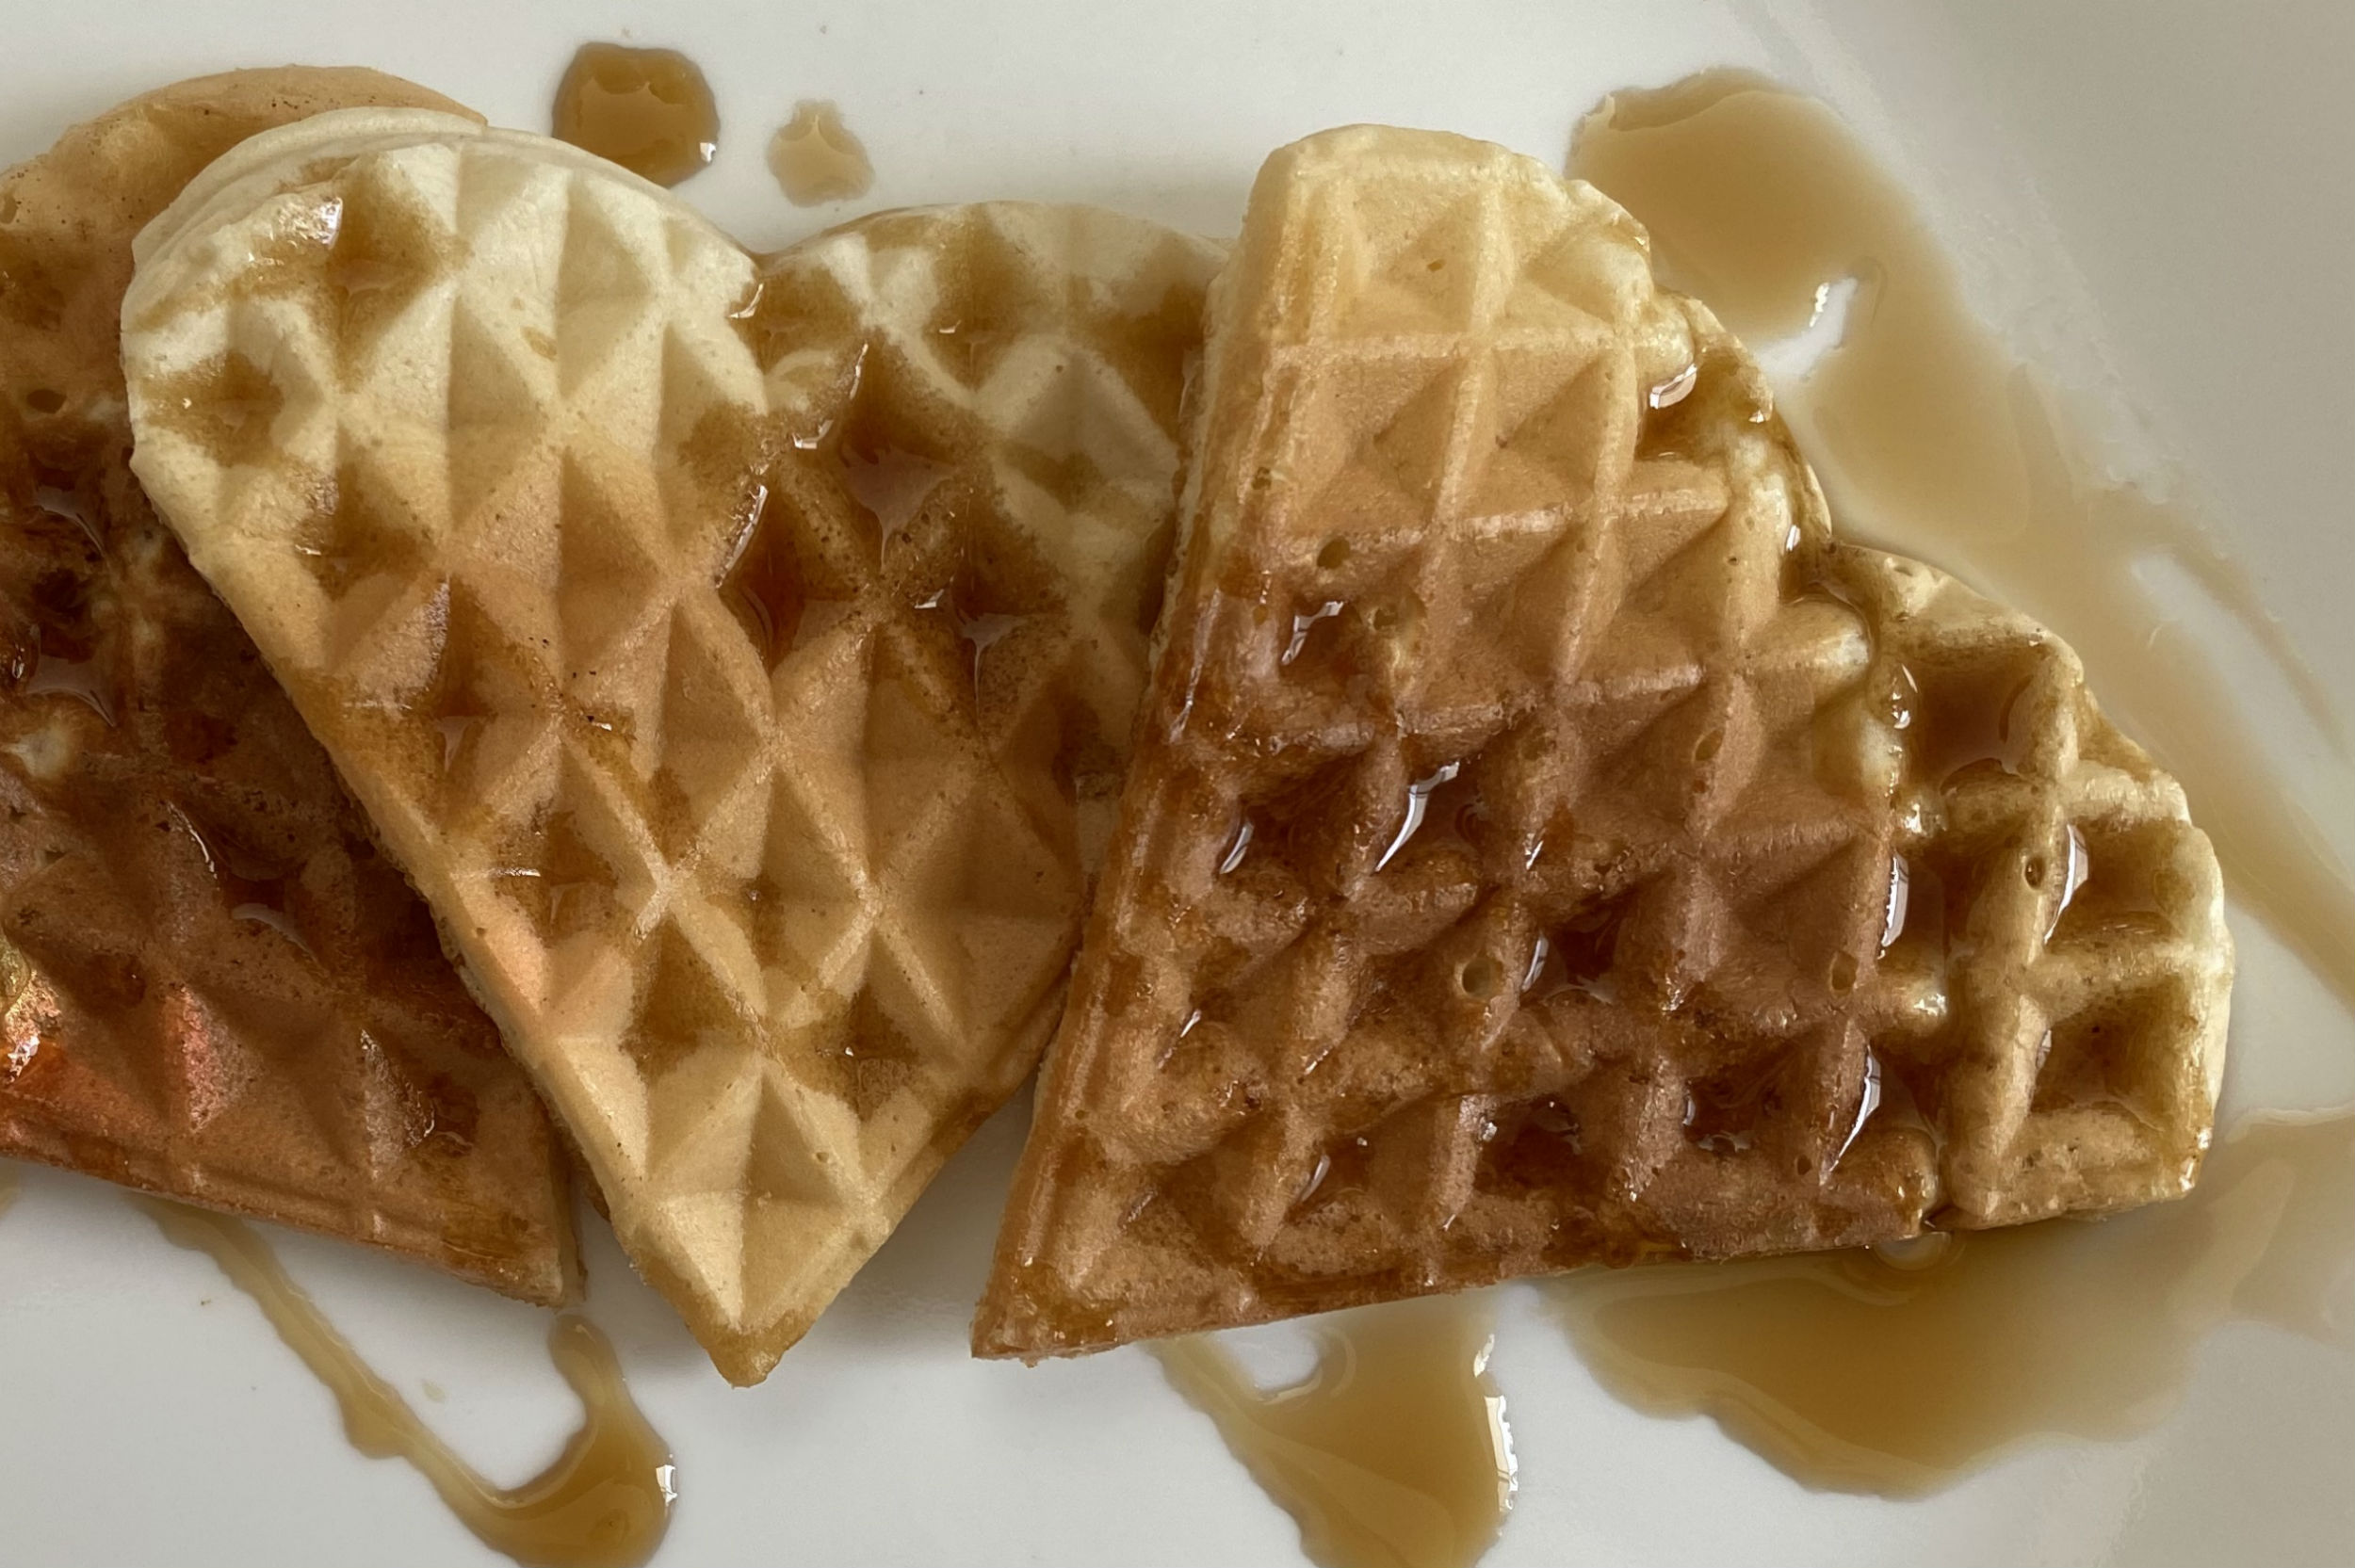 heart shaped waffles on plate drizzled with maple syrup